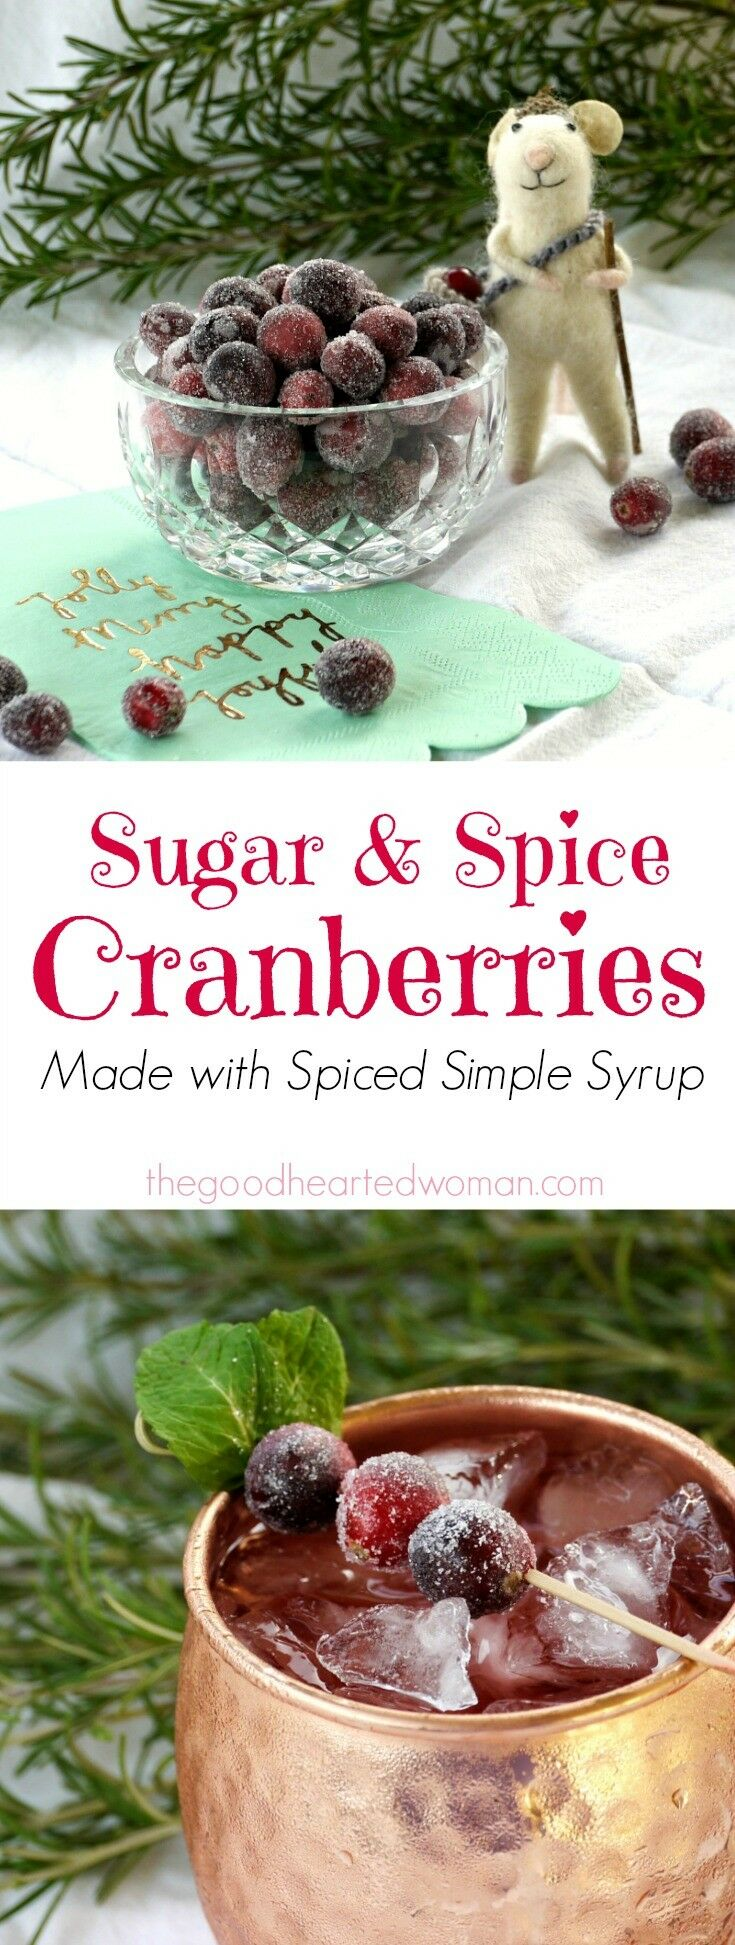 Sugar & Spice Cranberries {Made with Spiced Simple Syrup} | The Good Hearted Woman